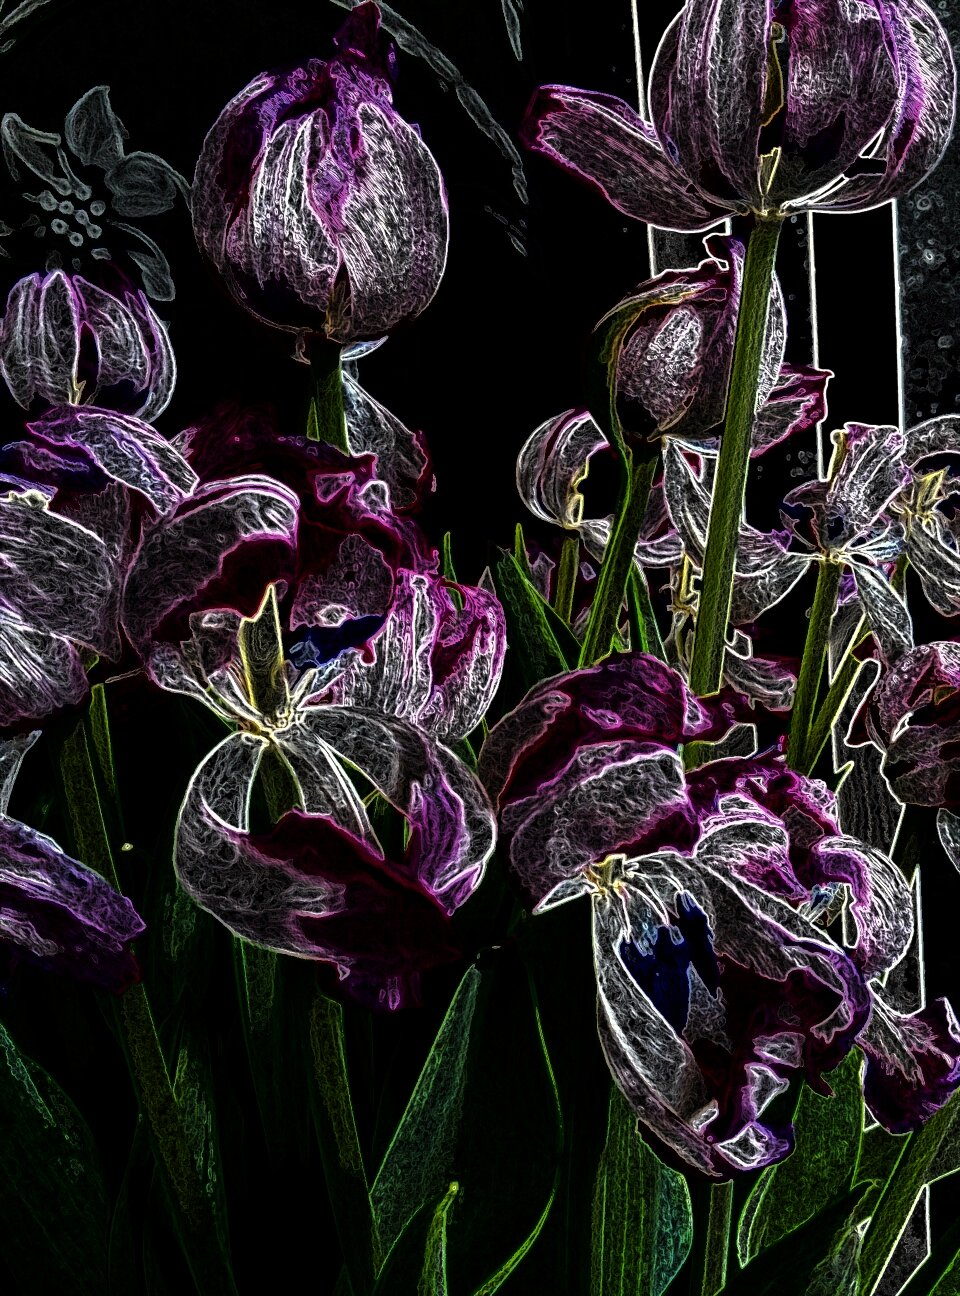 decaying tulips